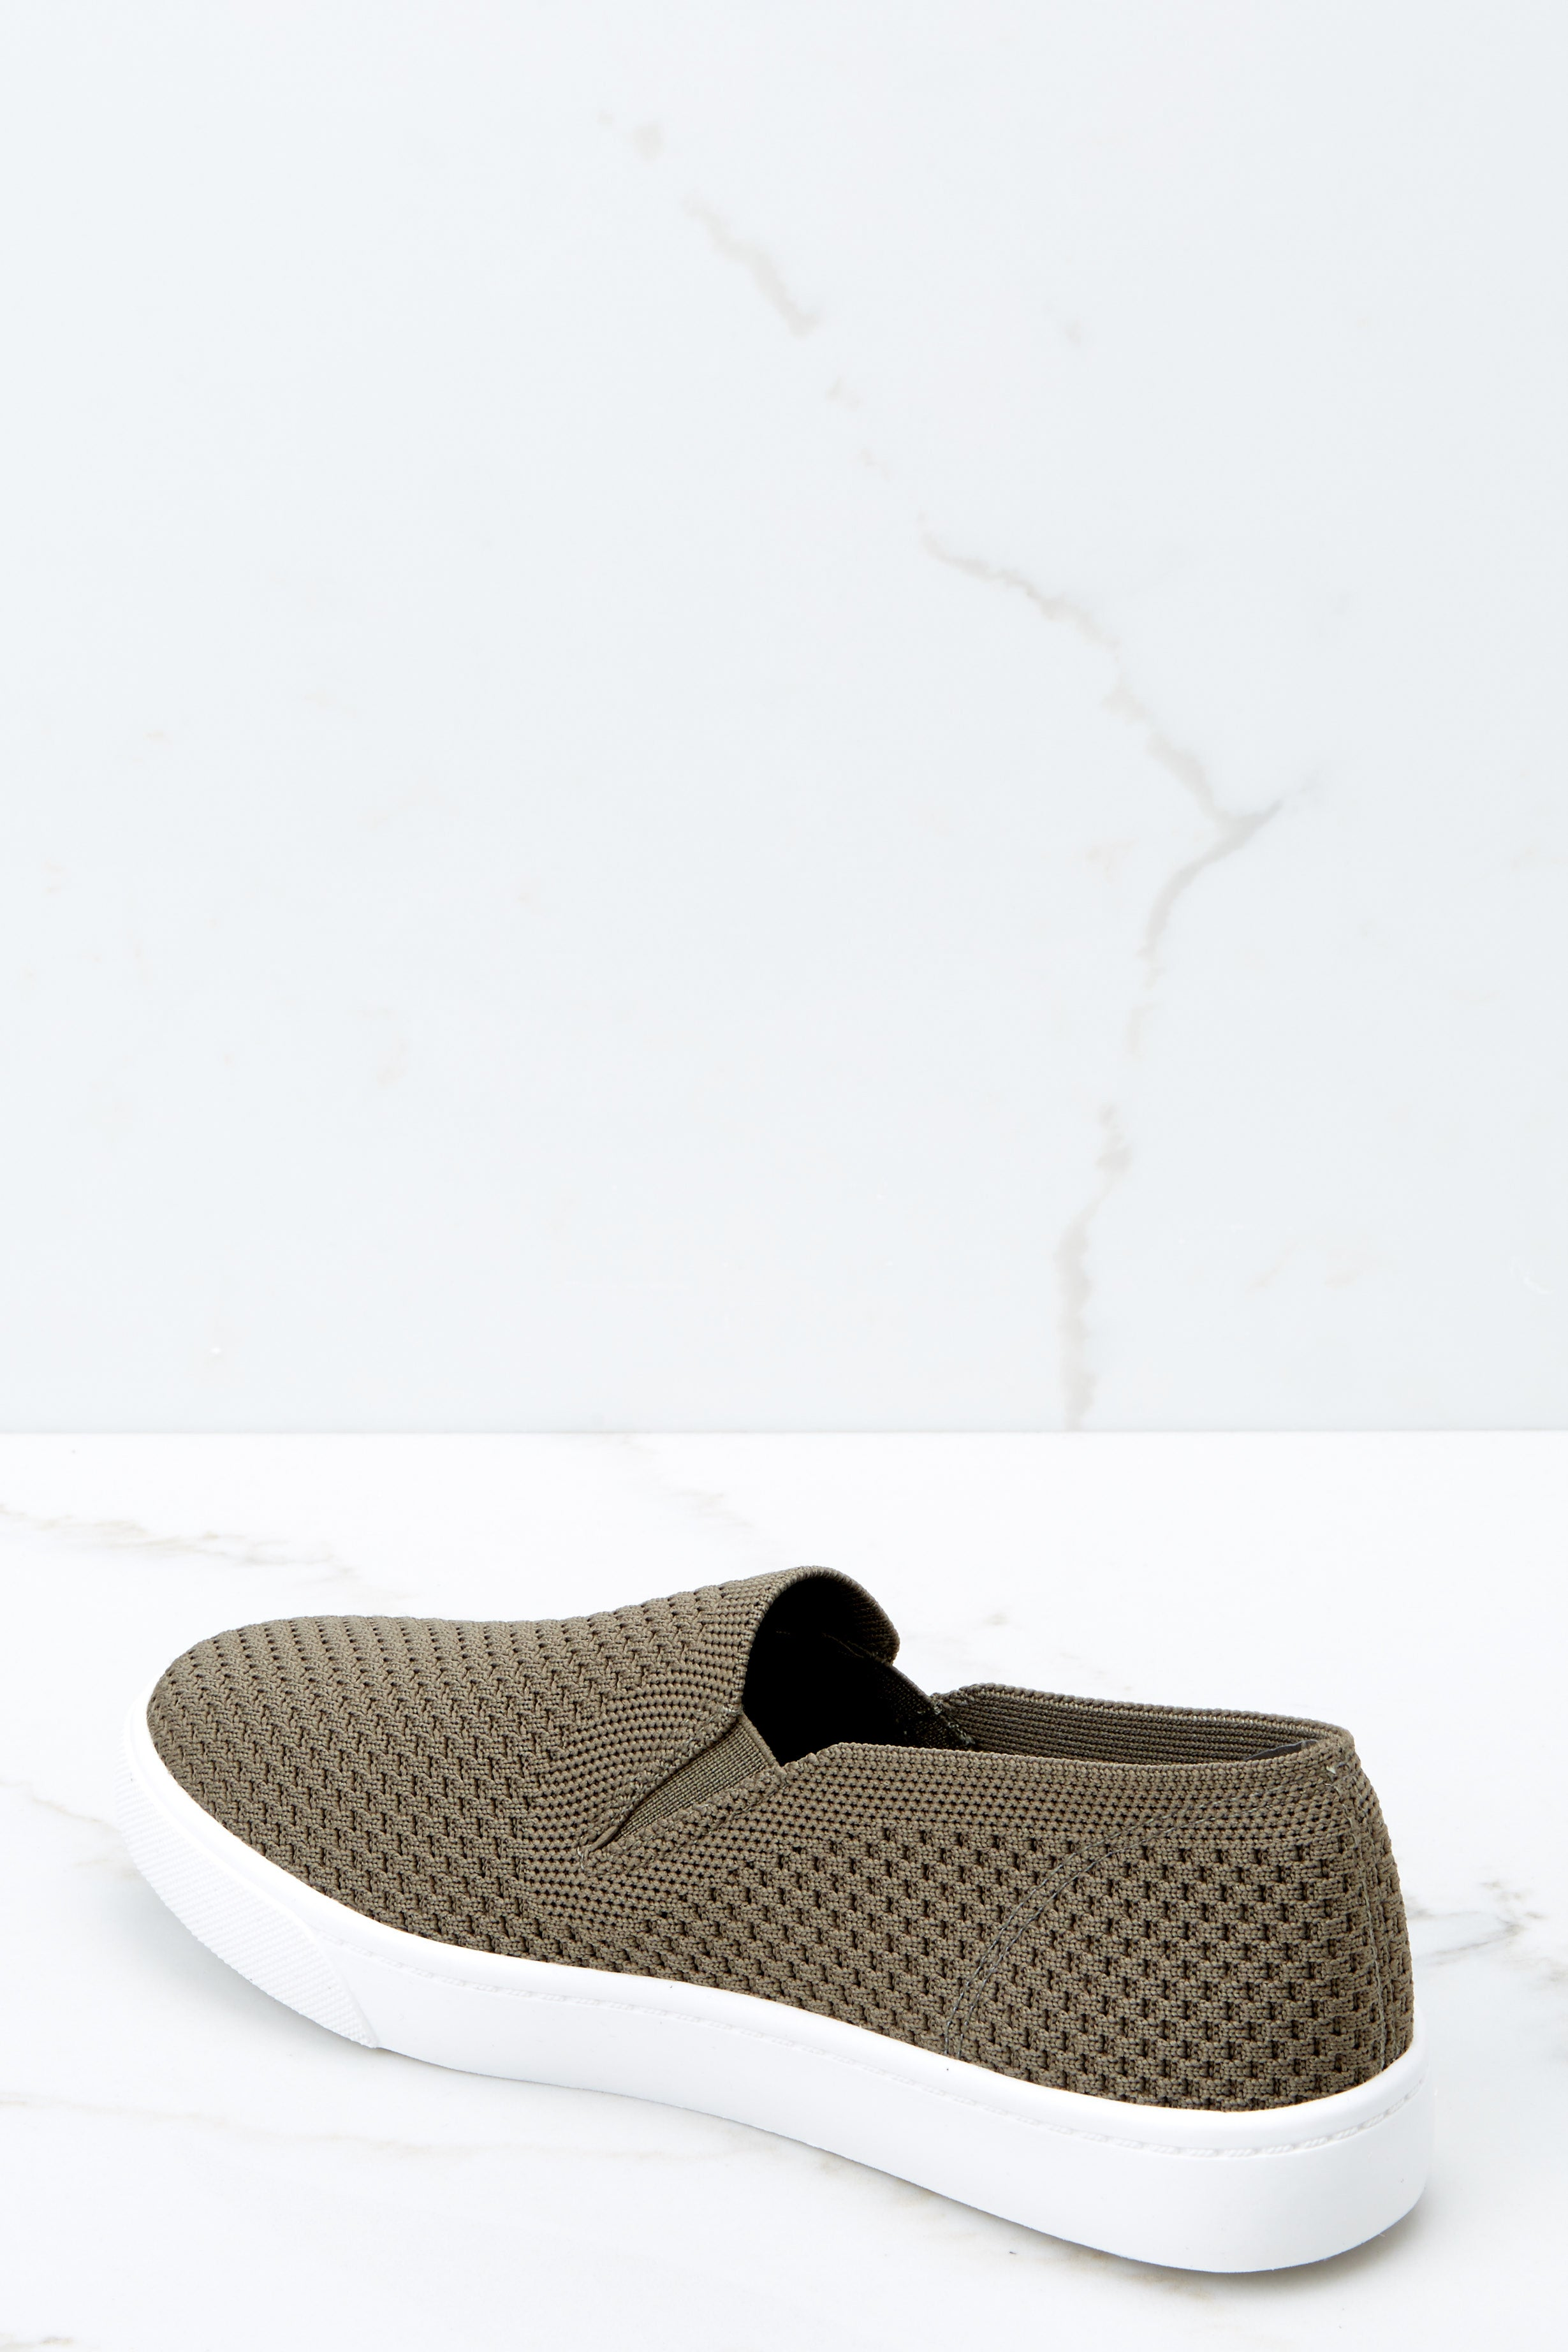 3 At A Moment's Notice Olive Slip On Sneakers at reddressboutique.com